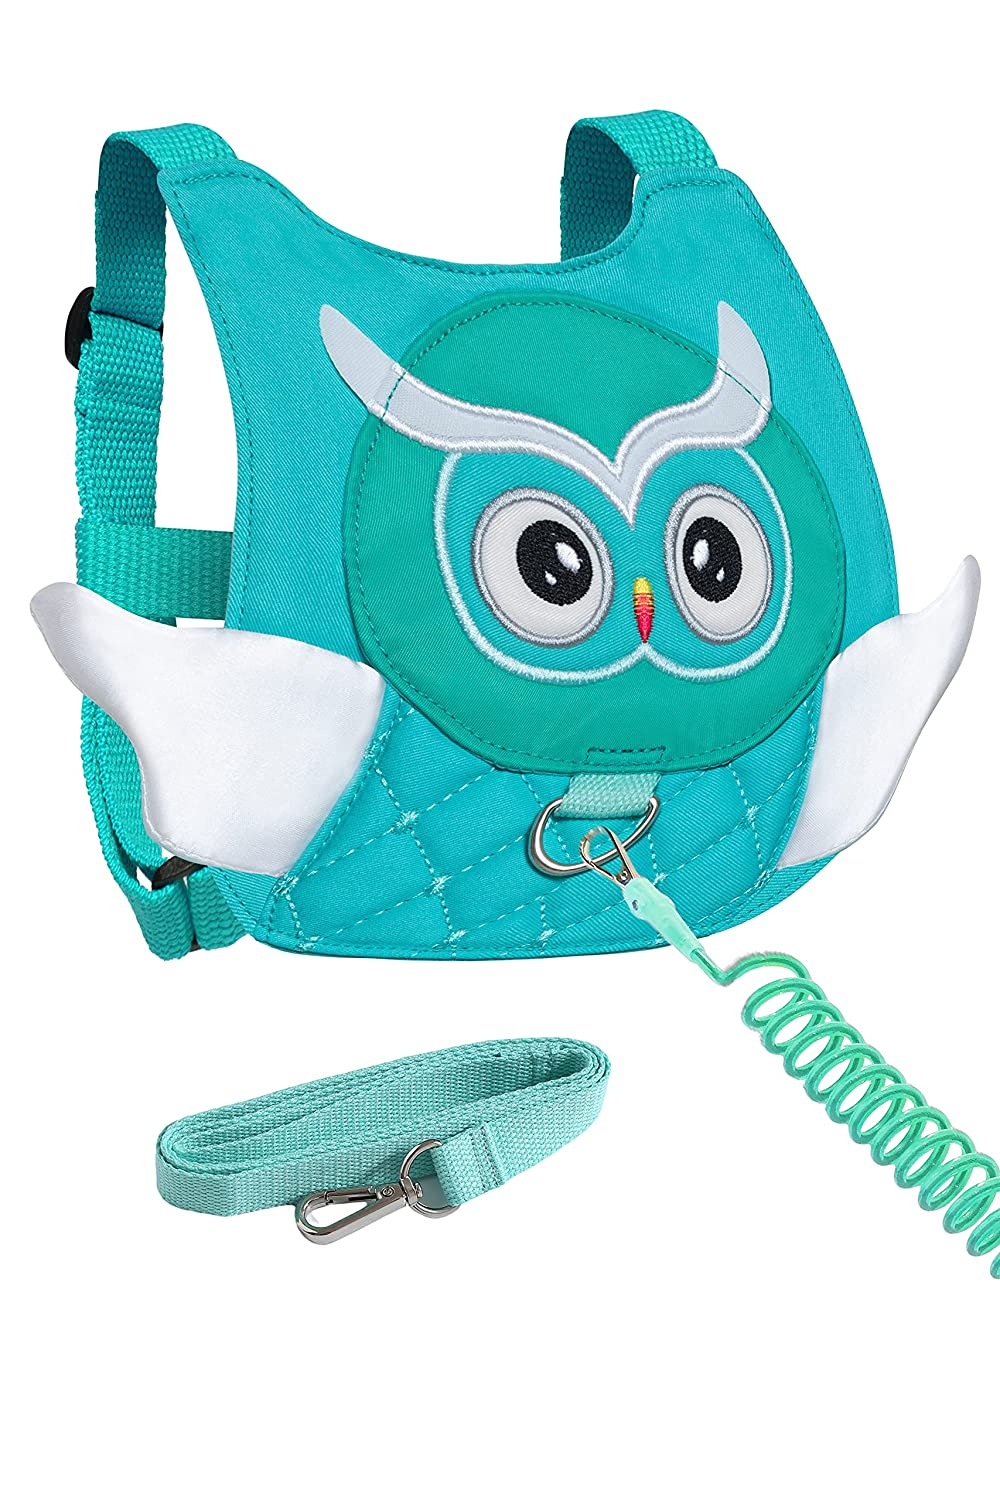 Owl Toddler Harness with Leash Kid Anti-Lost Wrist Link Leash Child Wristband (Light Green)